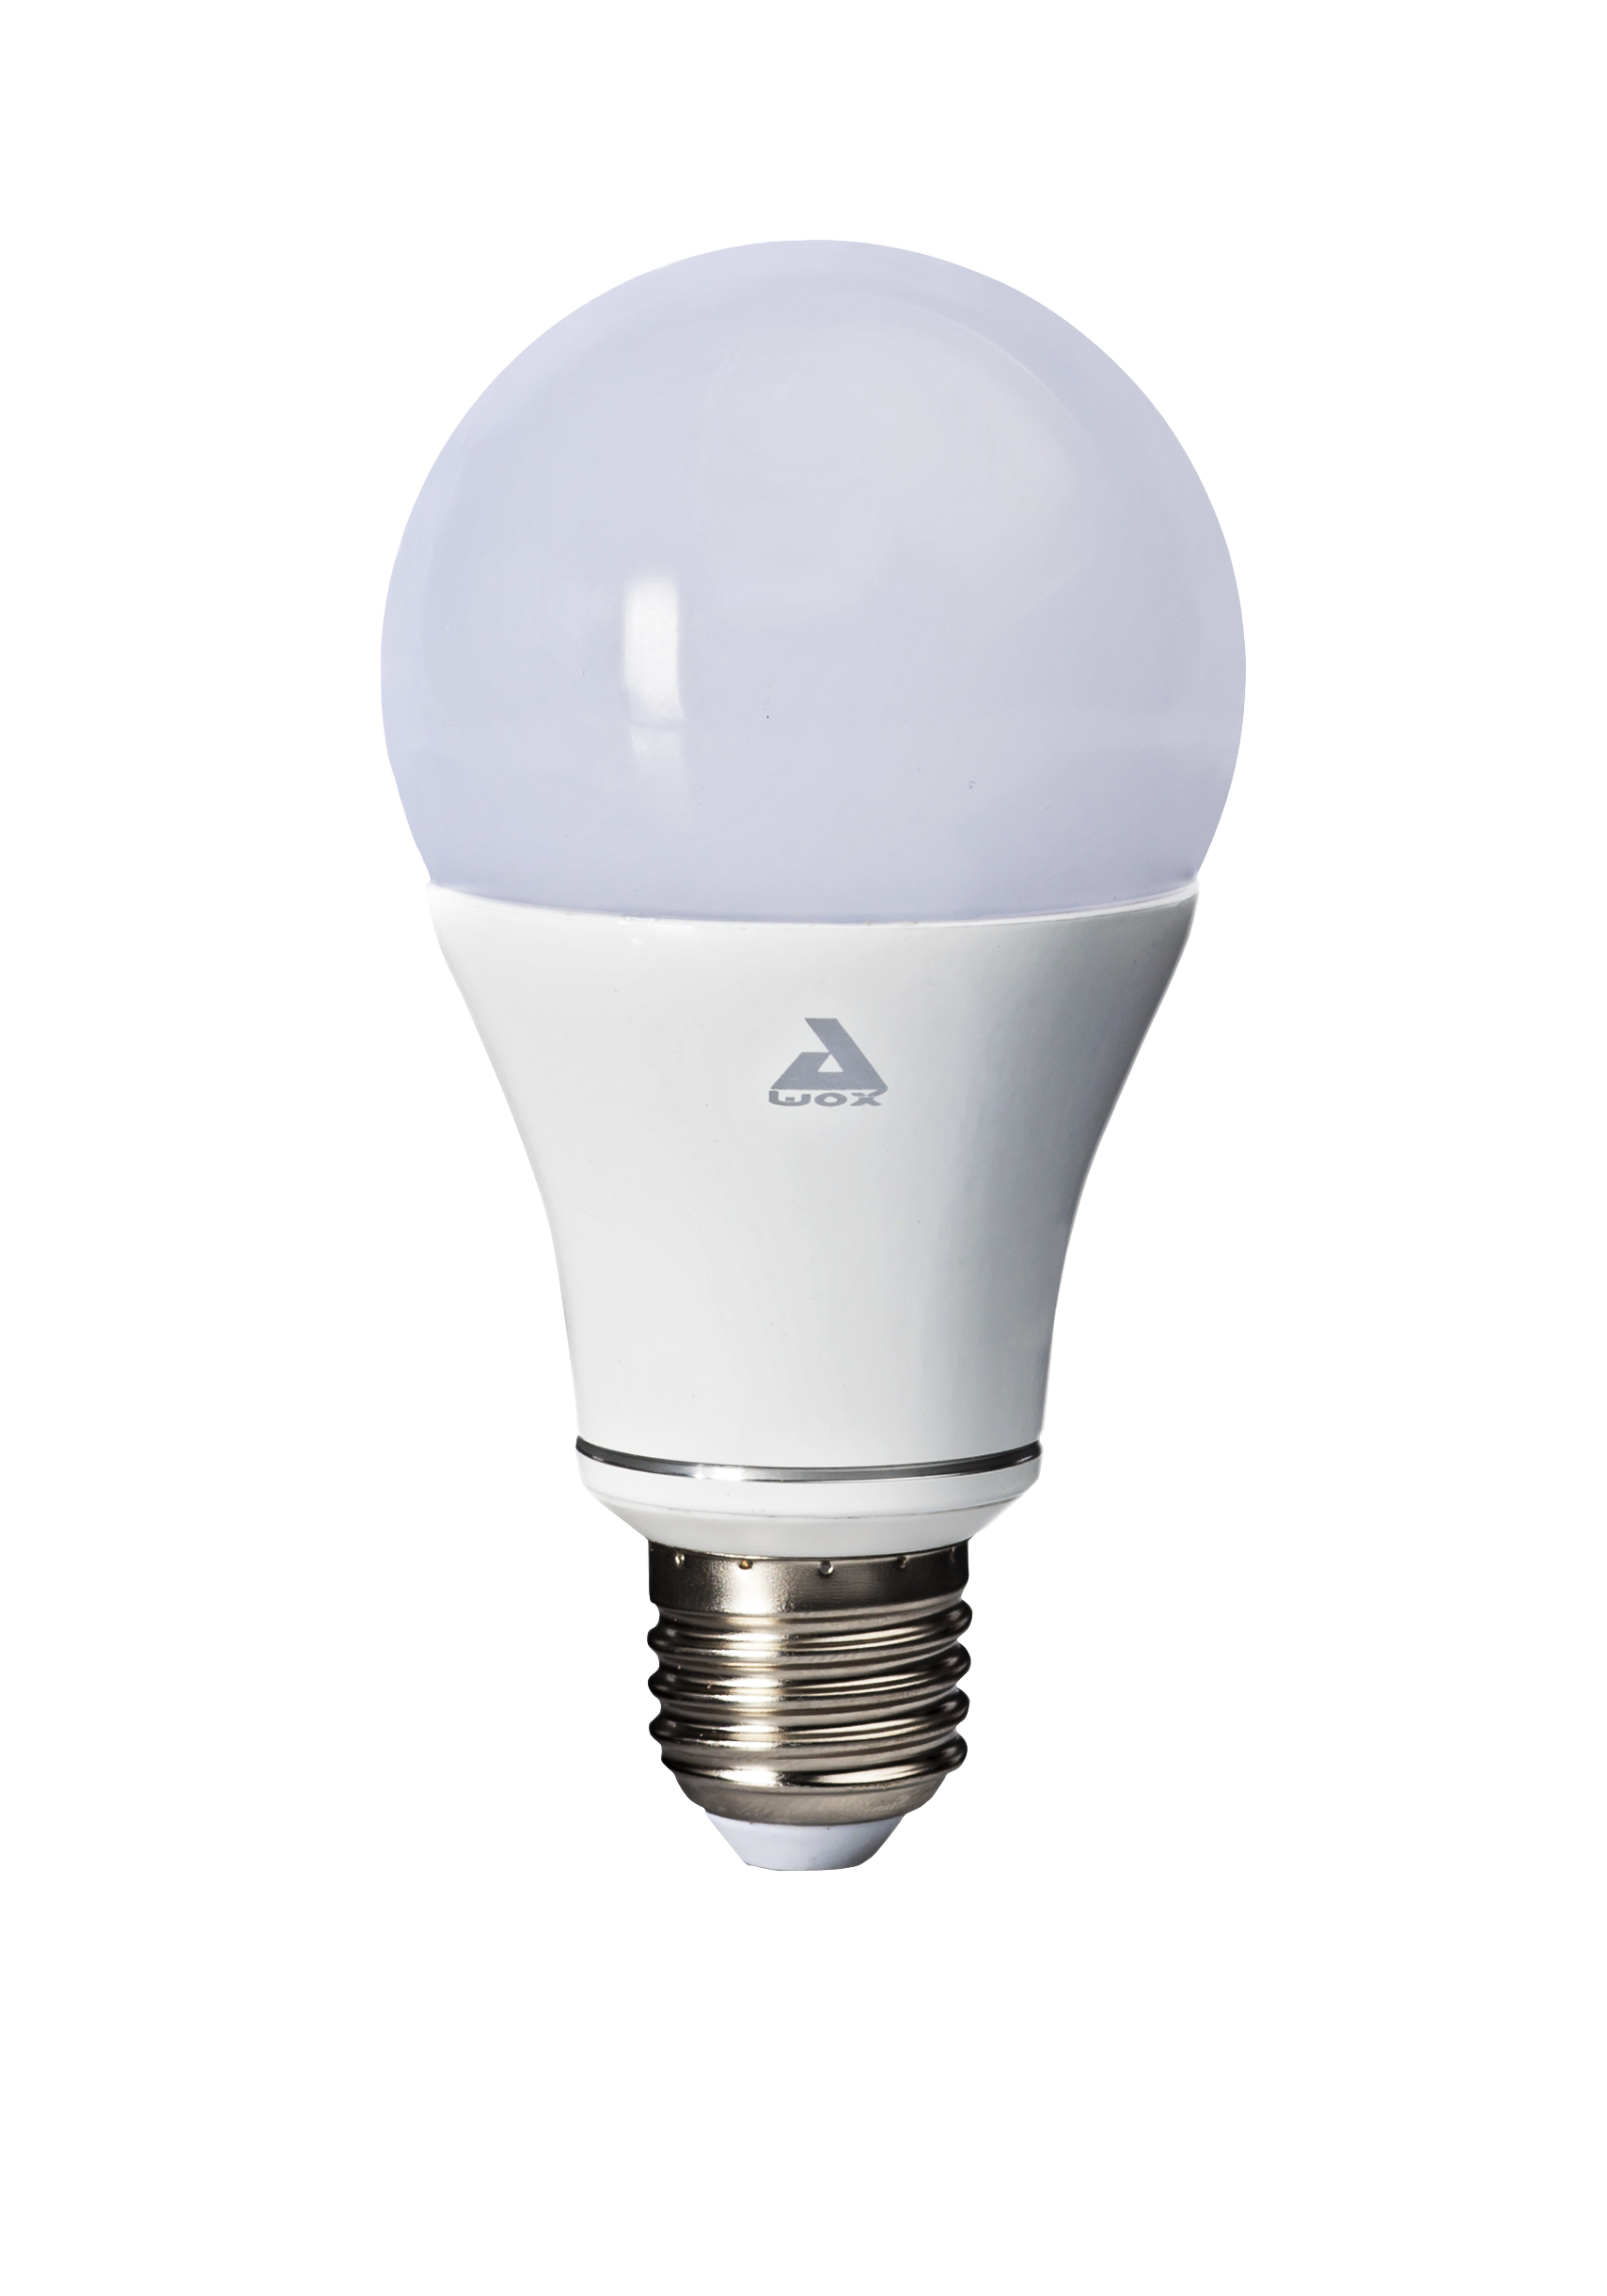 Smartled Led Connected Light Bulb White Lighting Awox